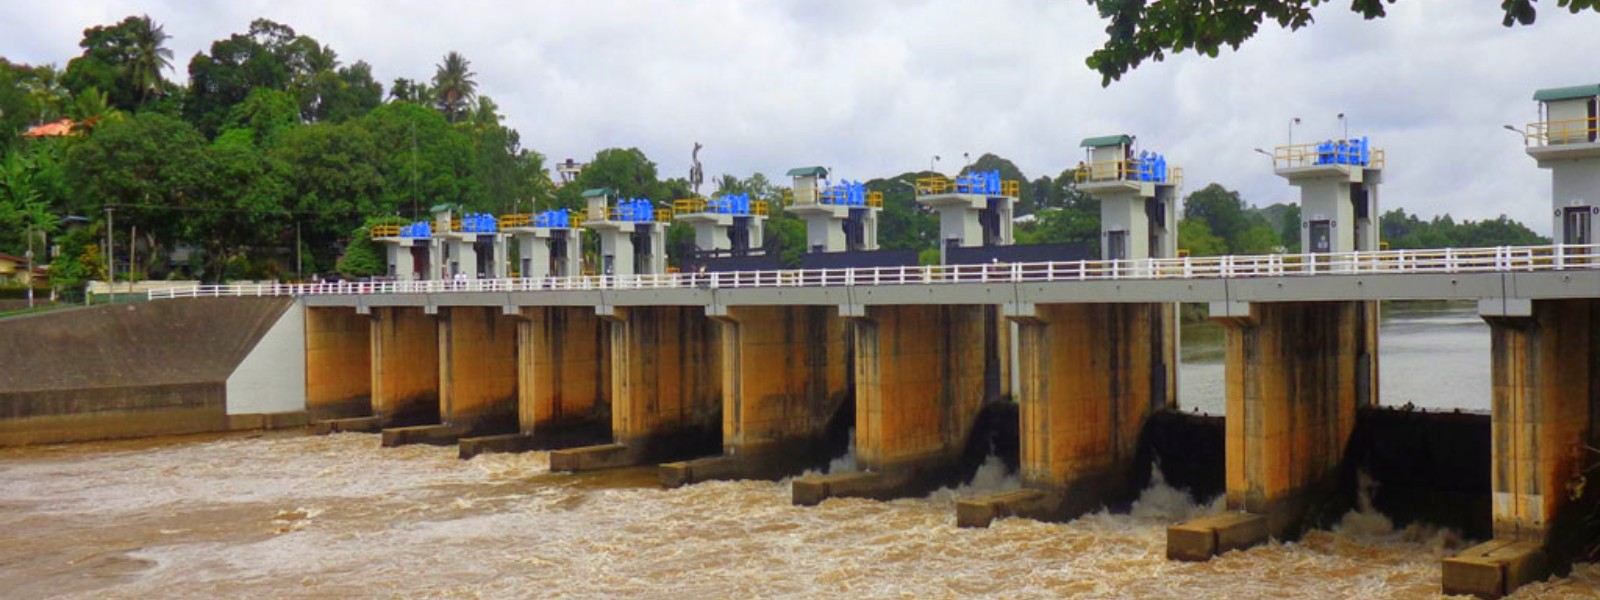 Polgolla Reservoir to be emptied on Thursday (11) night